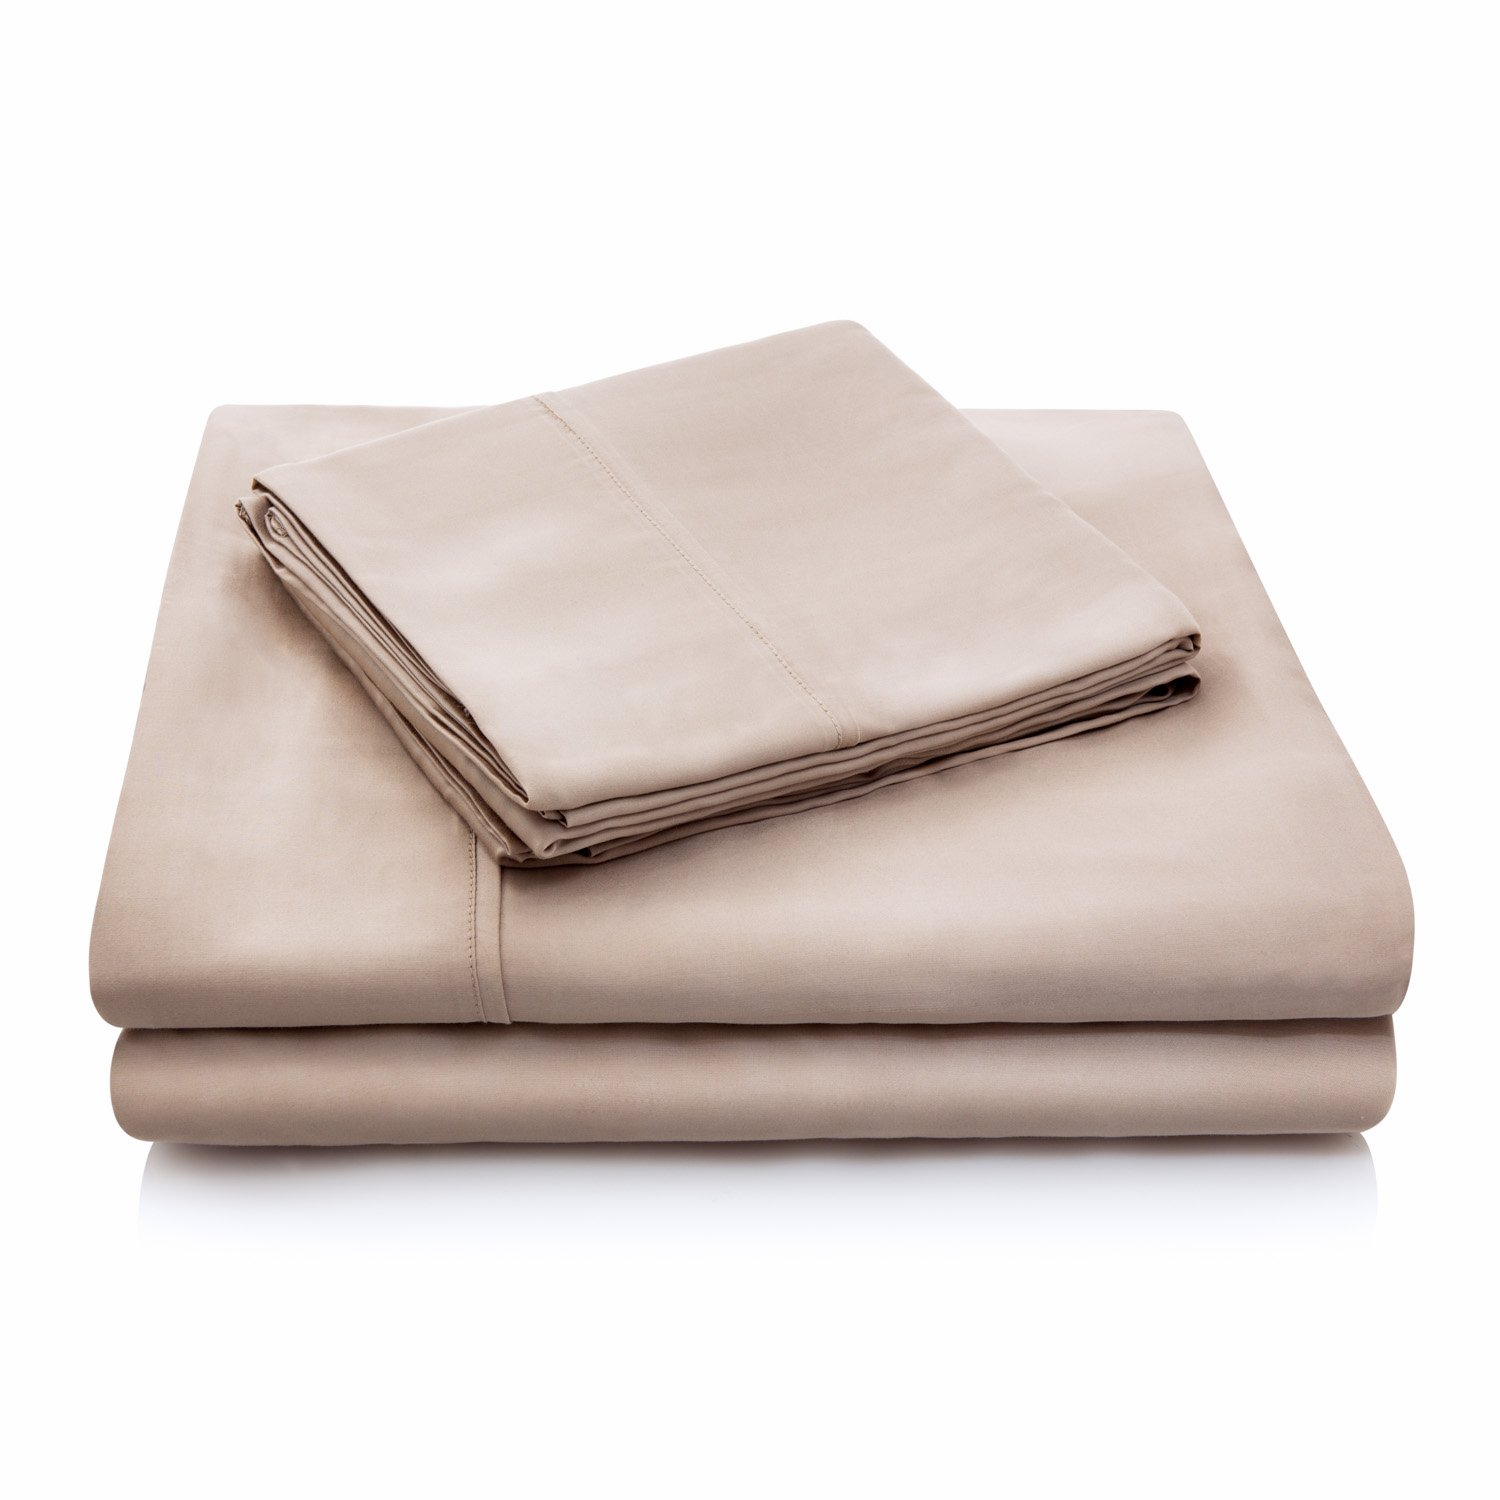 WOVEN Tencel Sheet Set - Silky Soft, Refreshing and Eco-Friendly